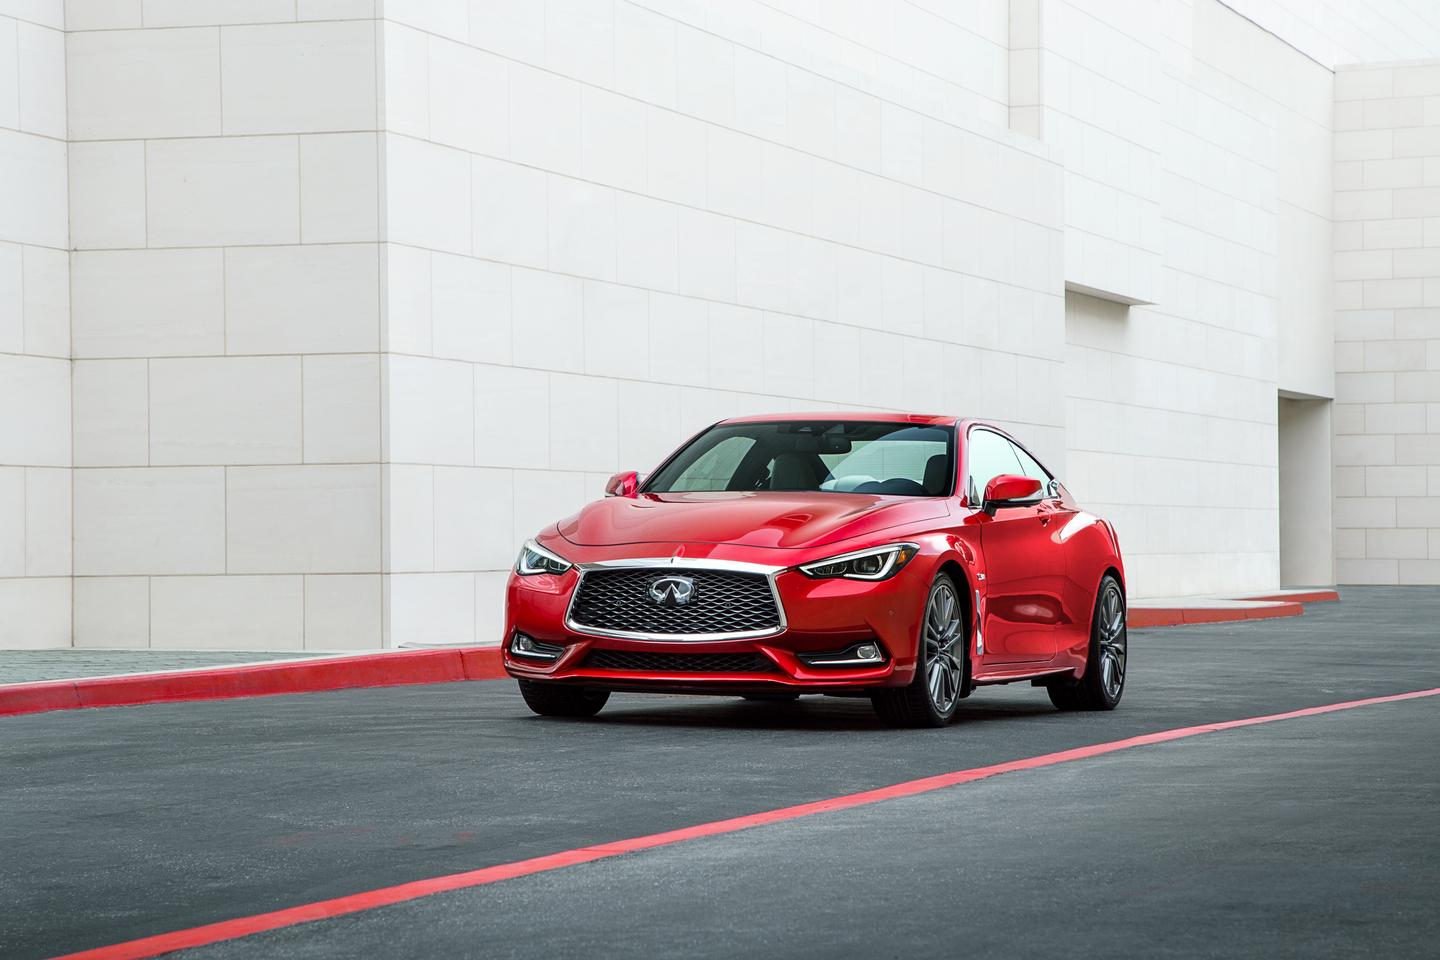 The 2017 Q60 will have three engine options, a turbocharged four-cylinder, a turbocharged V6, and a twin-turbocharged V6